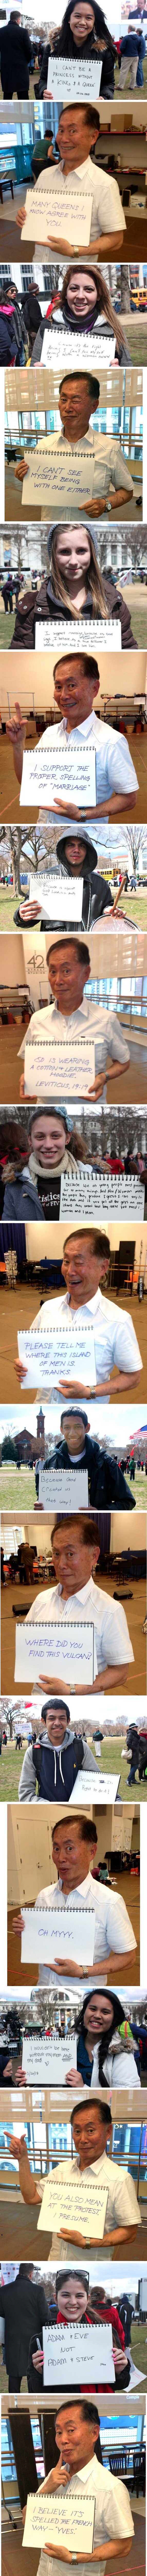 George Takei responds to traditional marriage fans - absolutely love him! Great sense of humour.